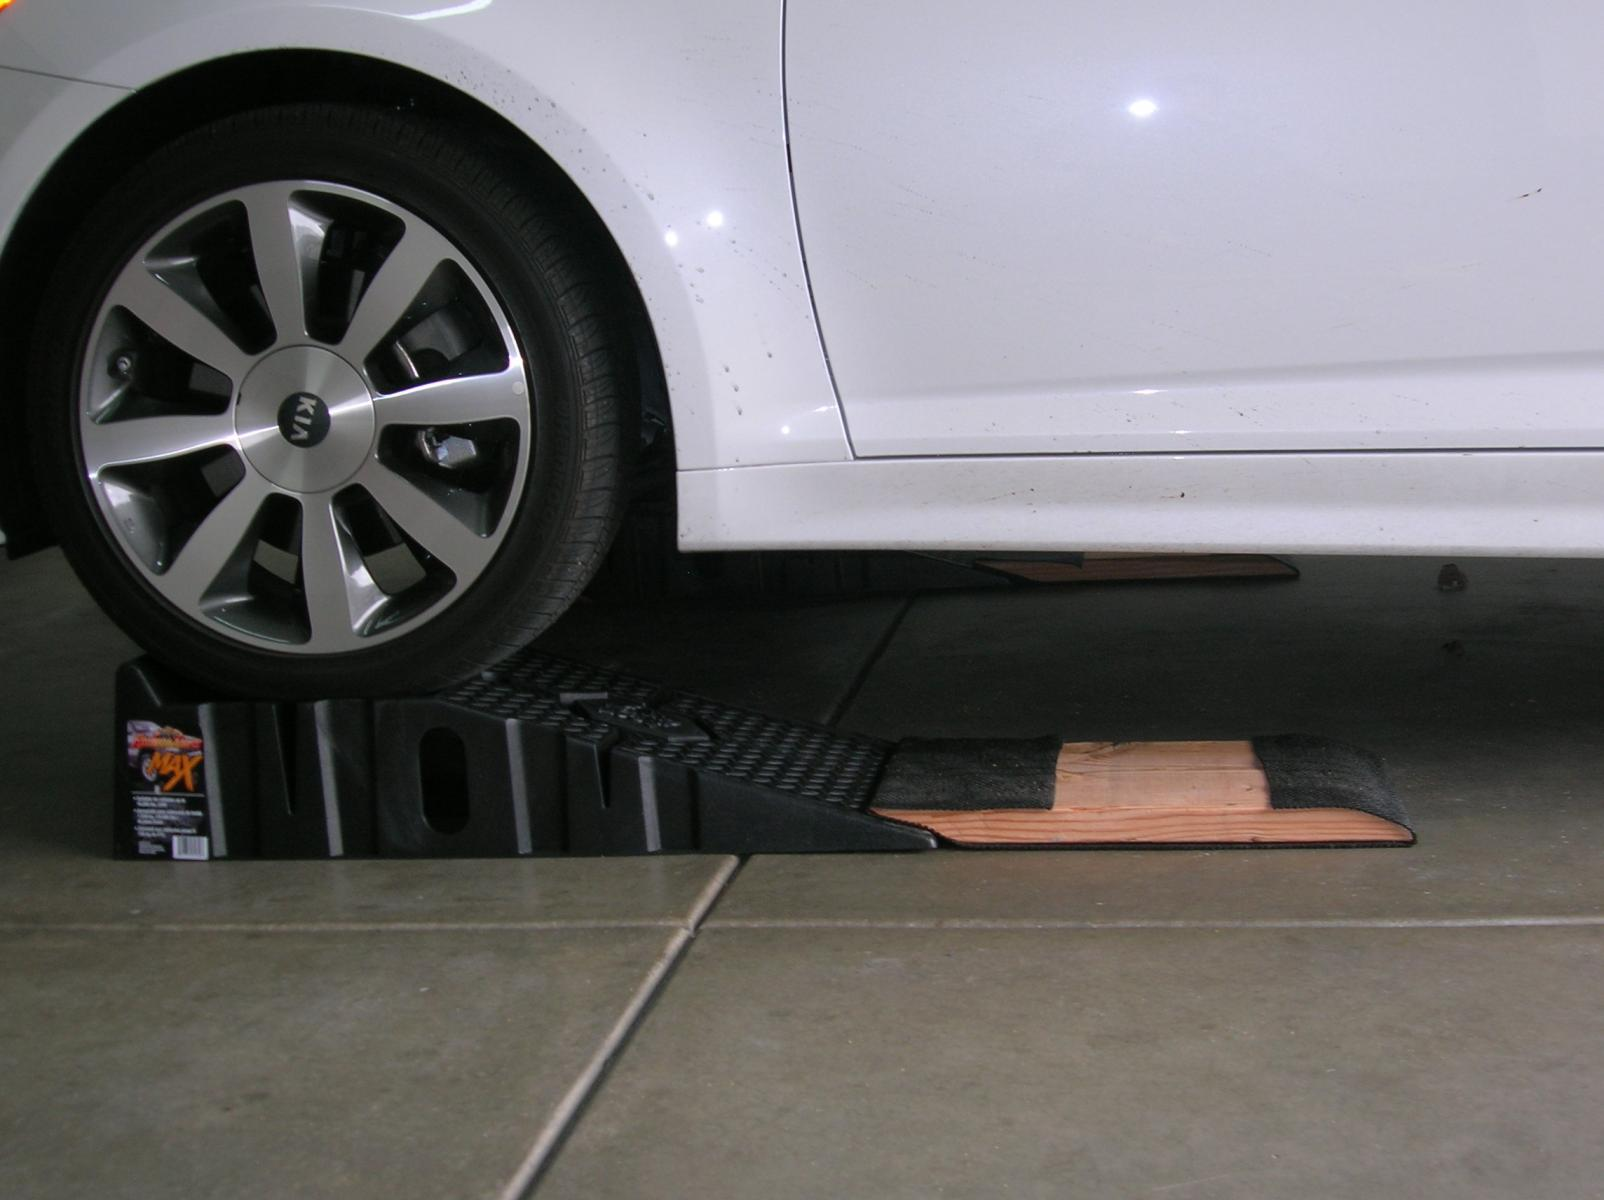 Oil Change Ramps